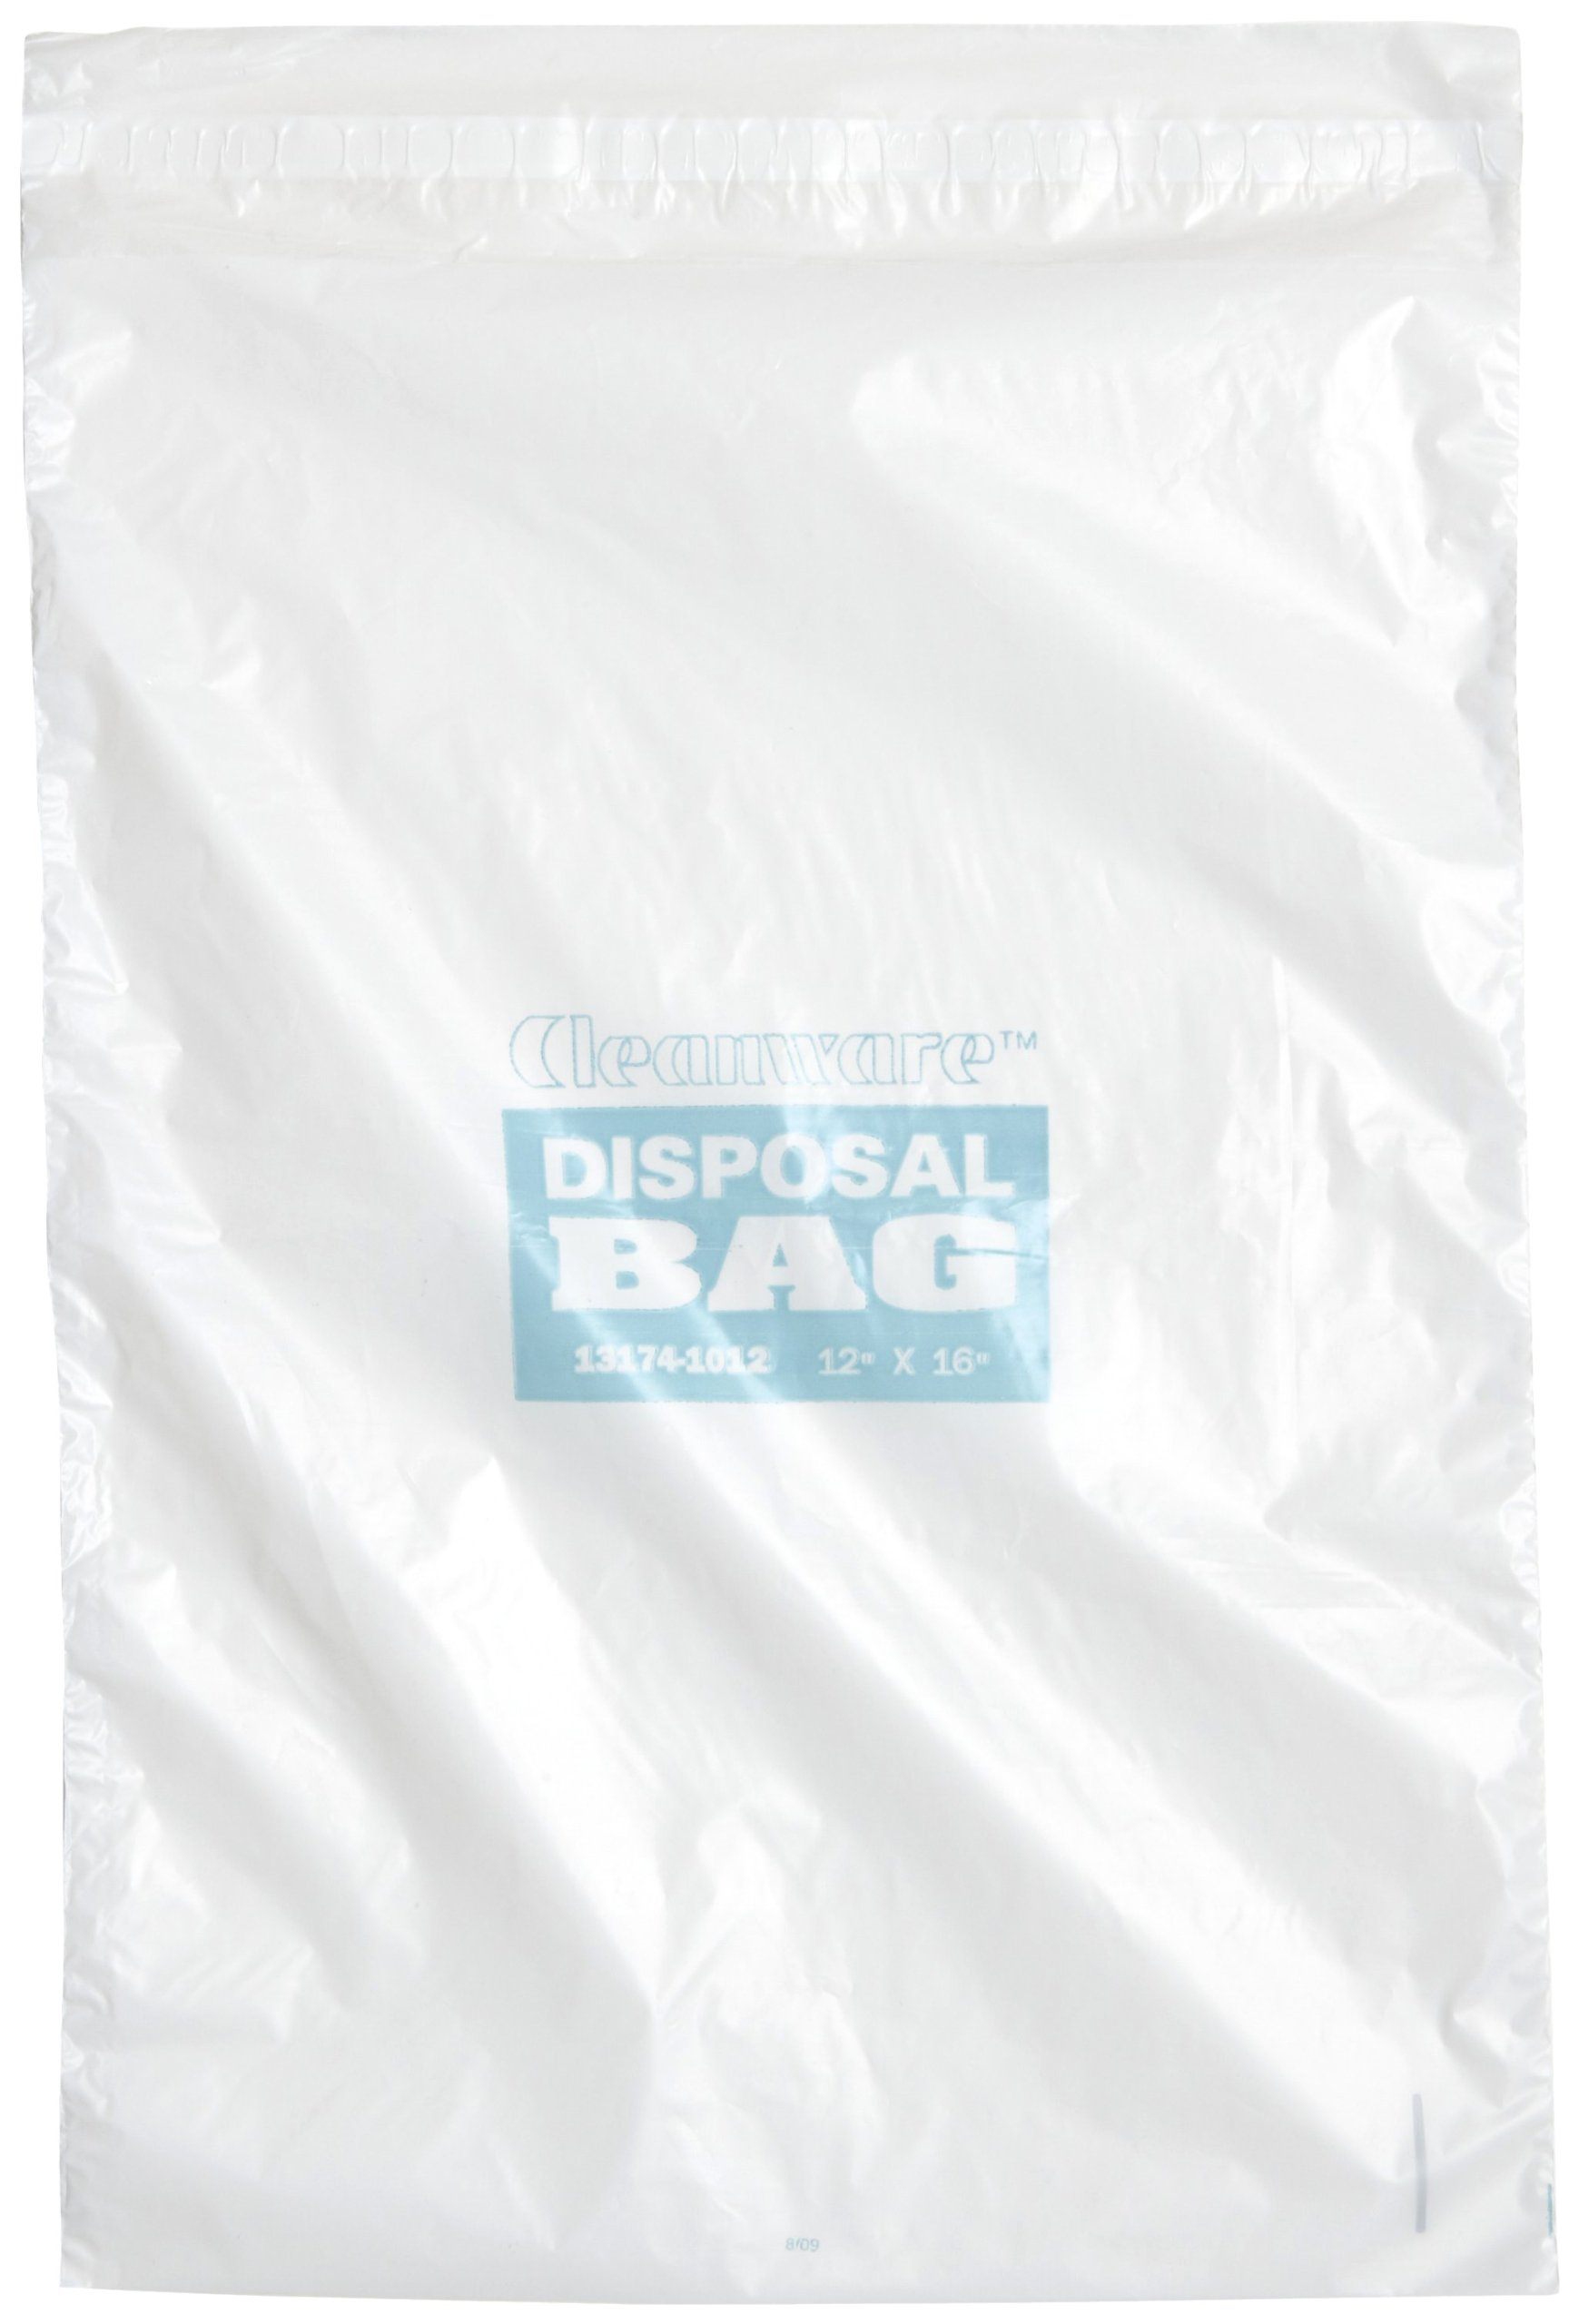 Bel-Art F13174-1012 Cleanware Polyethylene White Self Adhesive Waste Bags; Holds 3 lb, 12 in. W x 16 in. H, 1.0 mil Thick (Pack of 50)